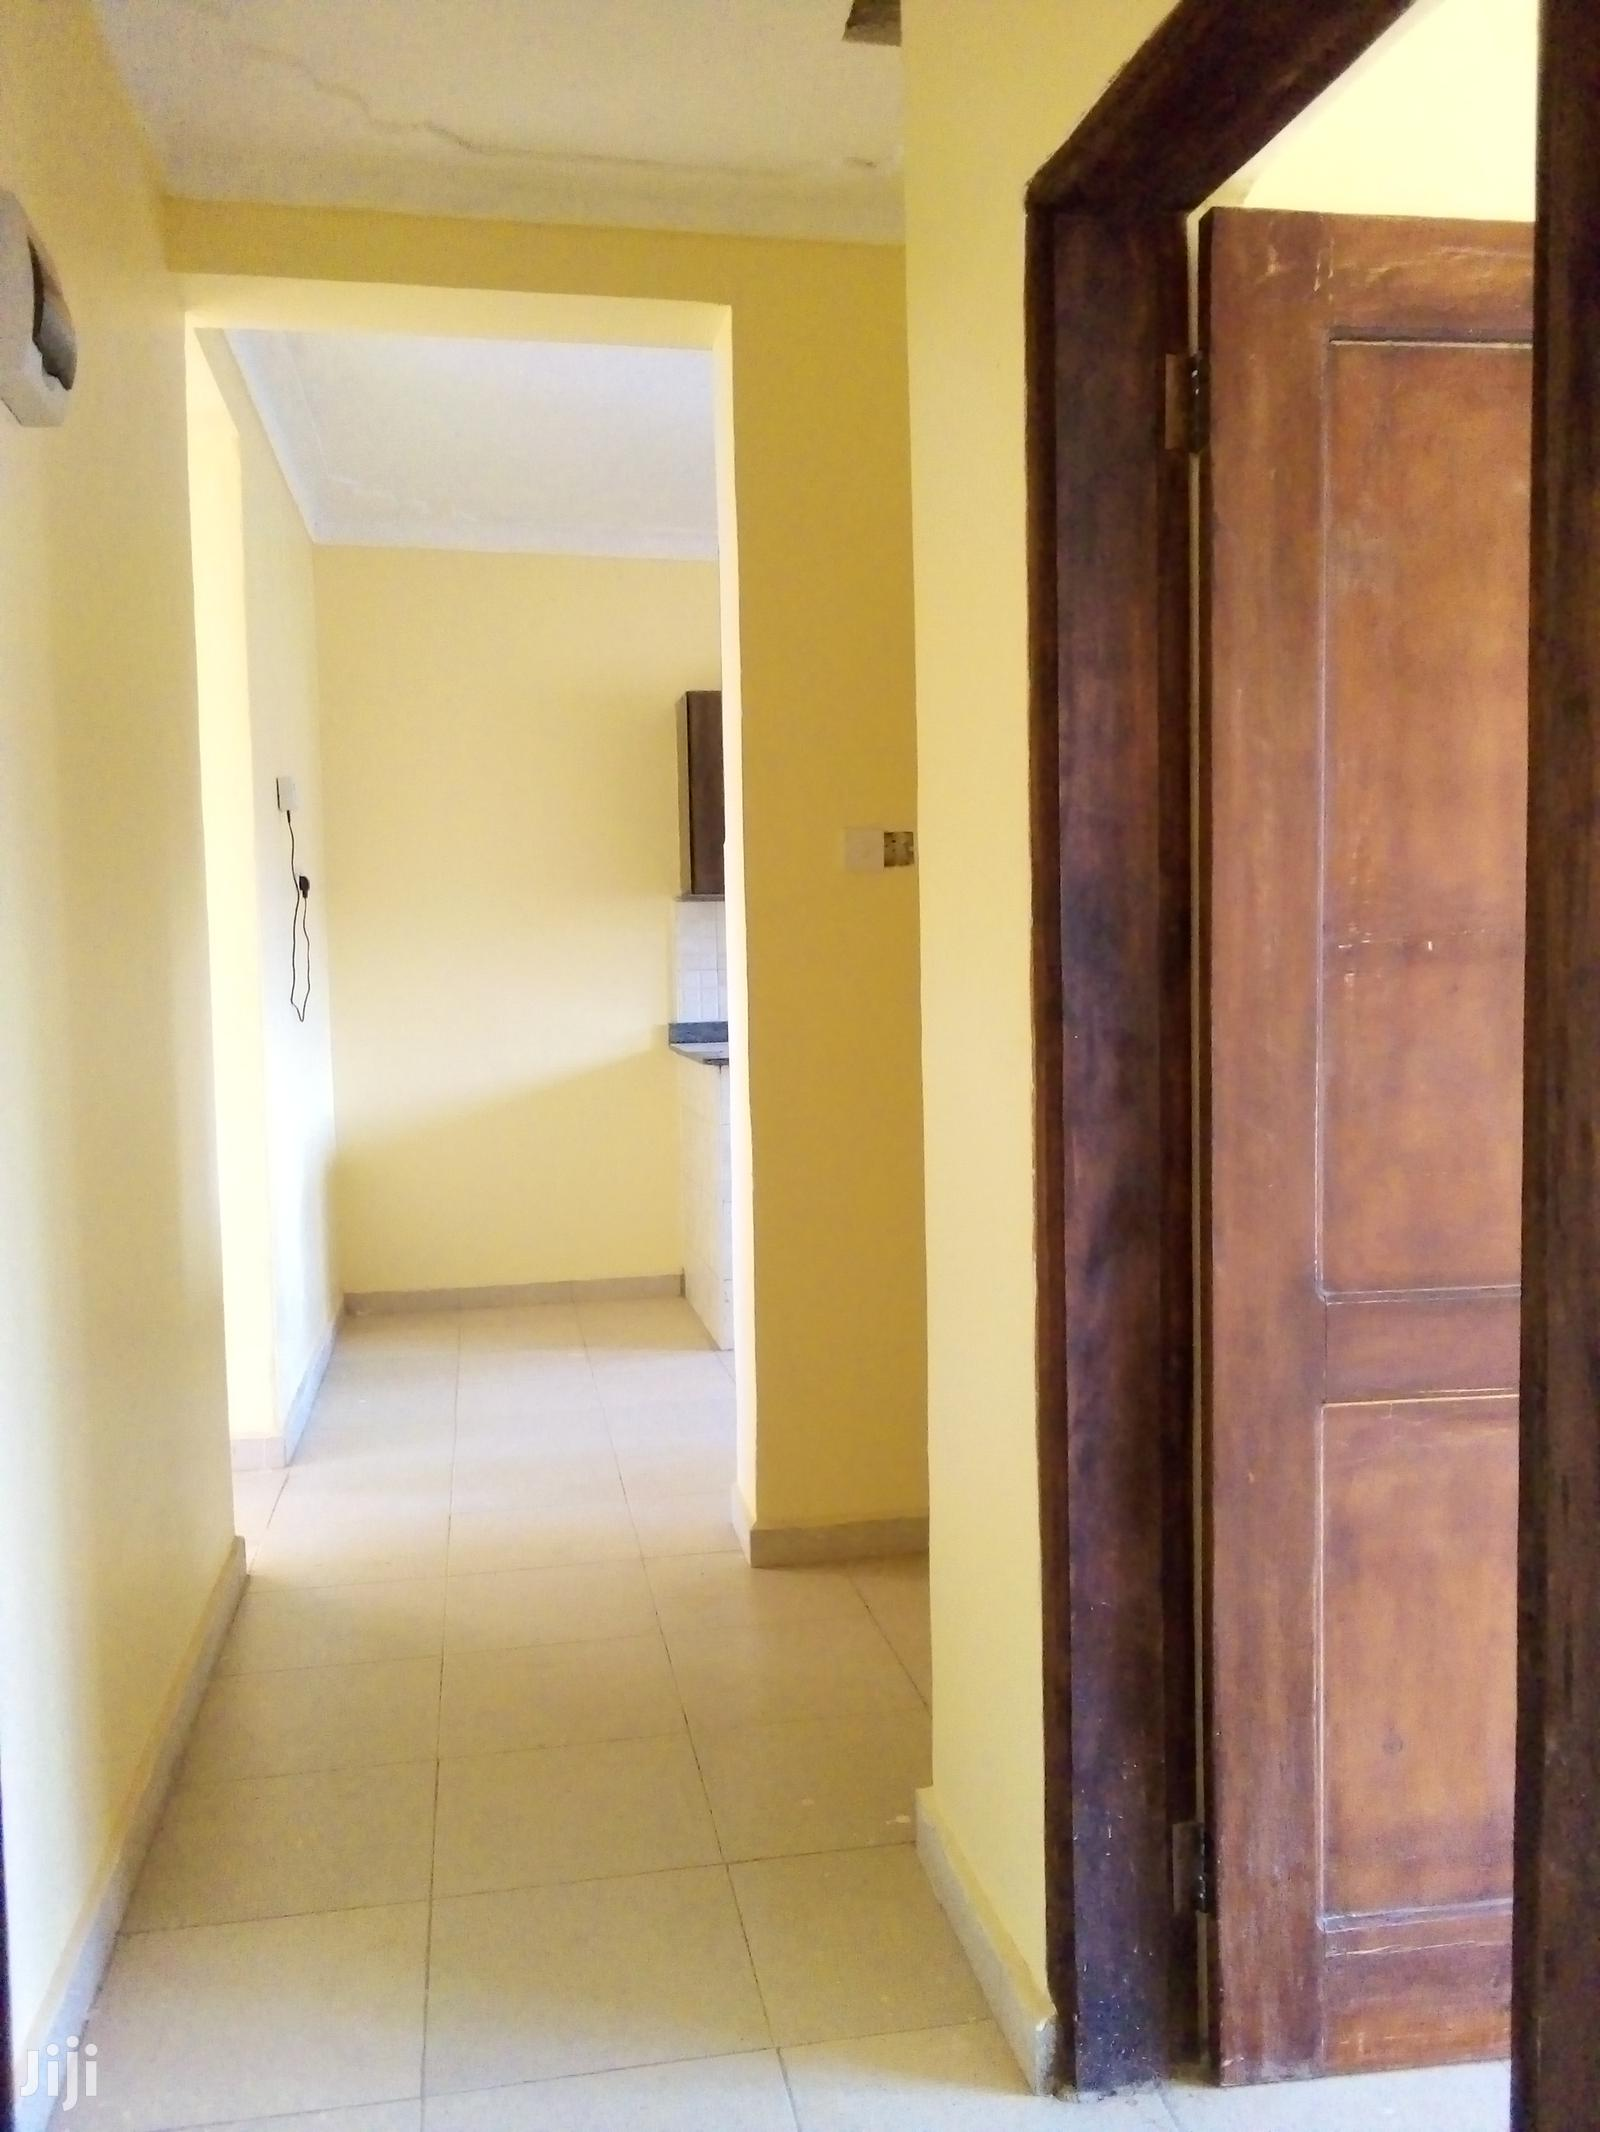 Najjera 2 Bedroom House For Rent | Houses & Apartments For Rent for sale in Kampala, Central Region, Uganda